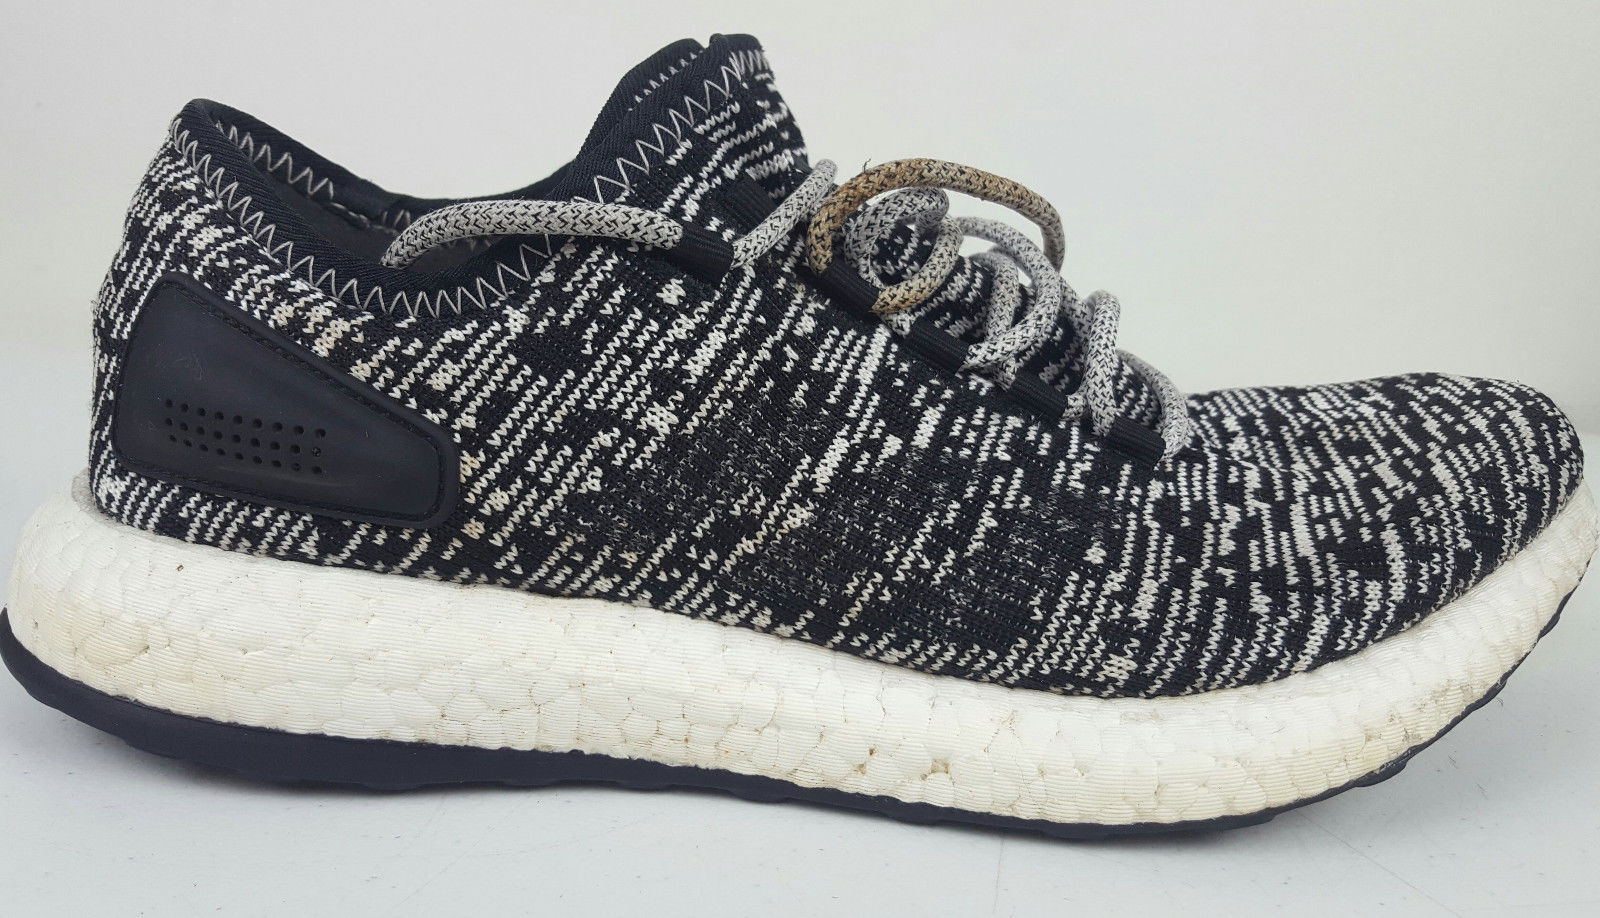 1593319f07390 S l1600. S l1600. Previous. 2016 Adidas Pure Boost Oreo Core Black White  Men s Running Shoe Sz 10 BA8890